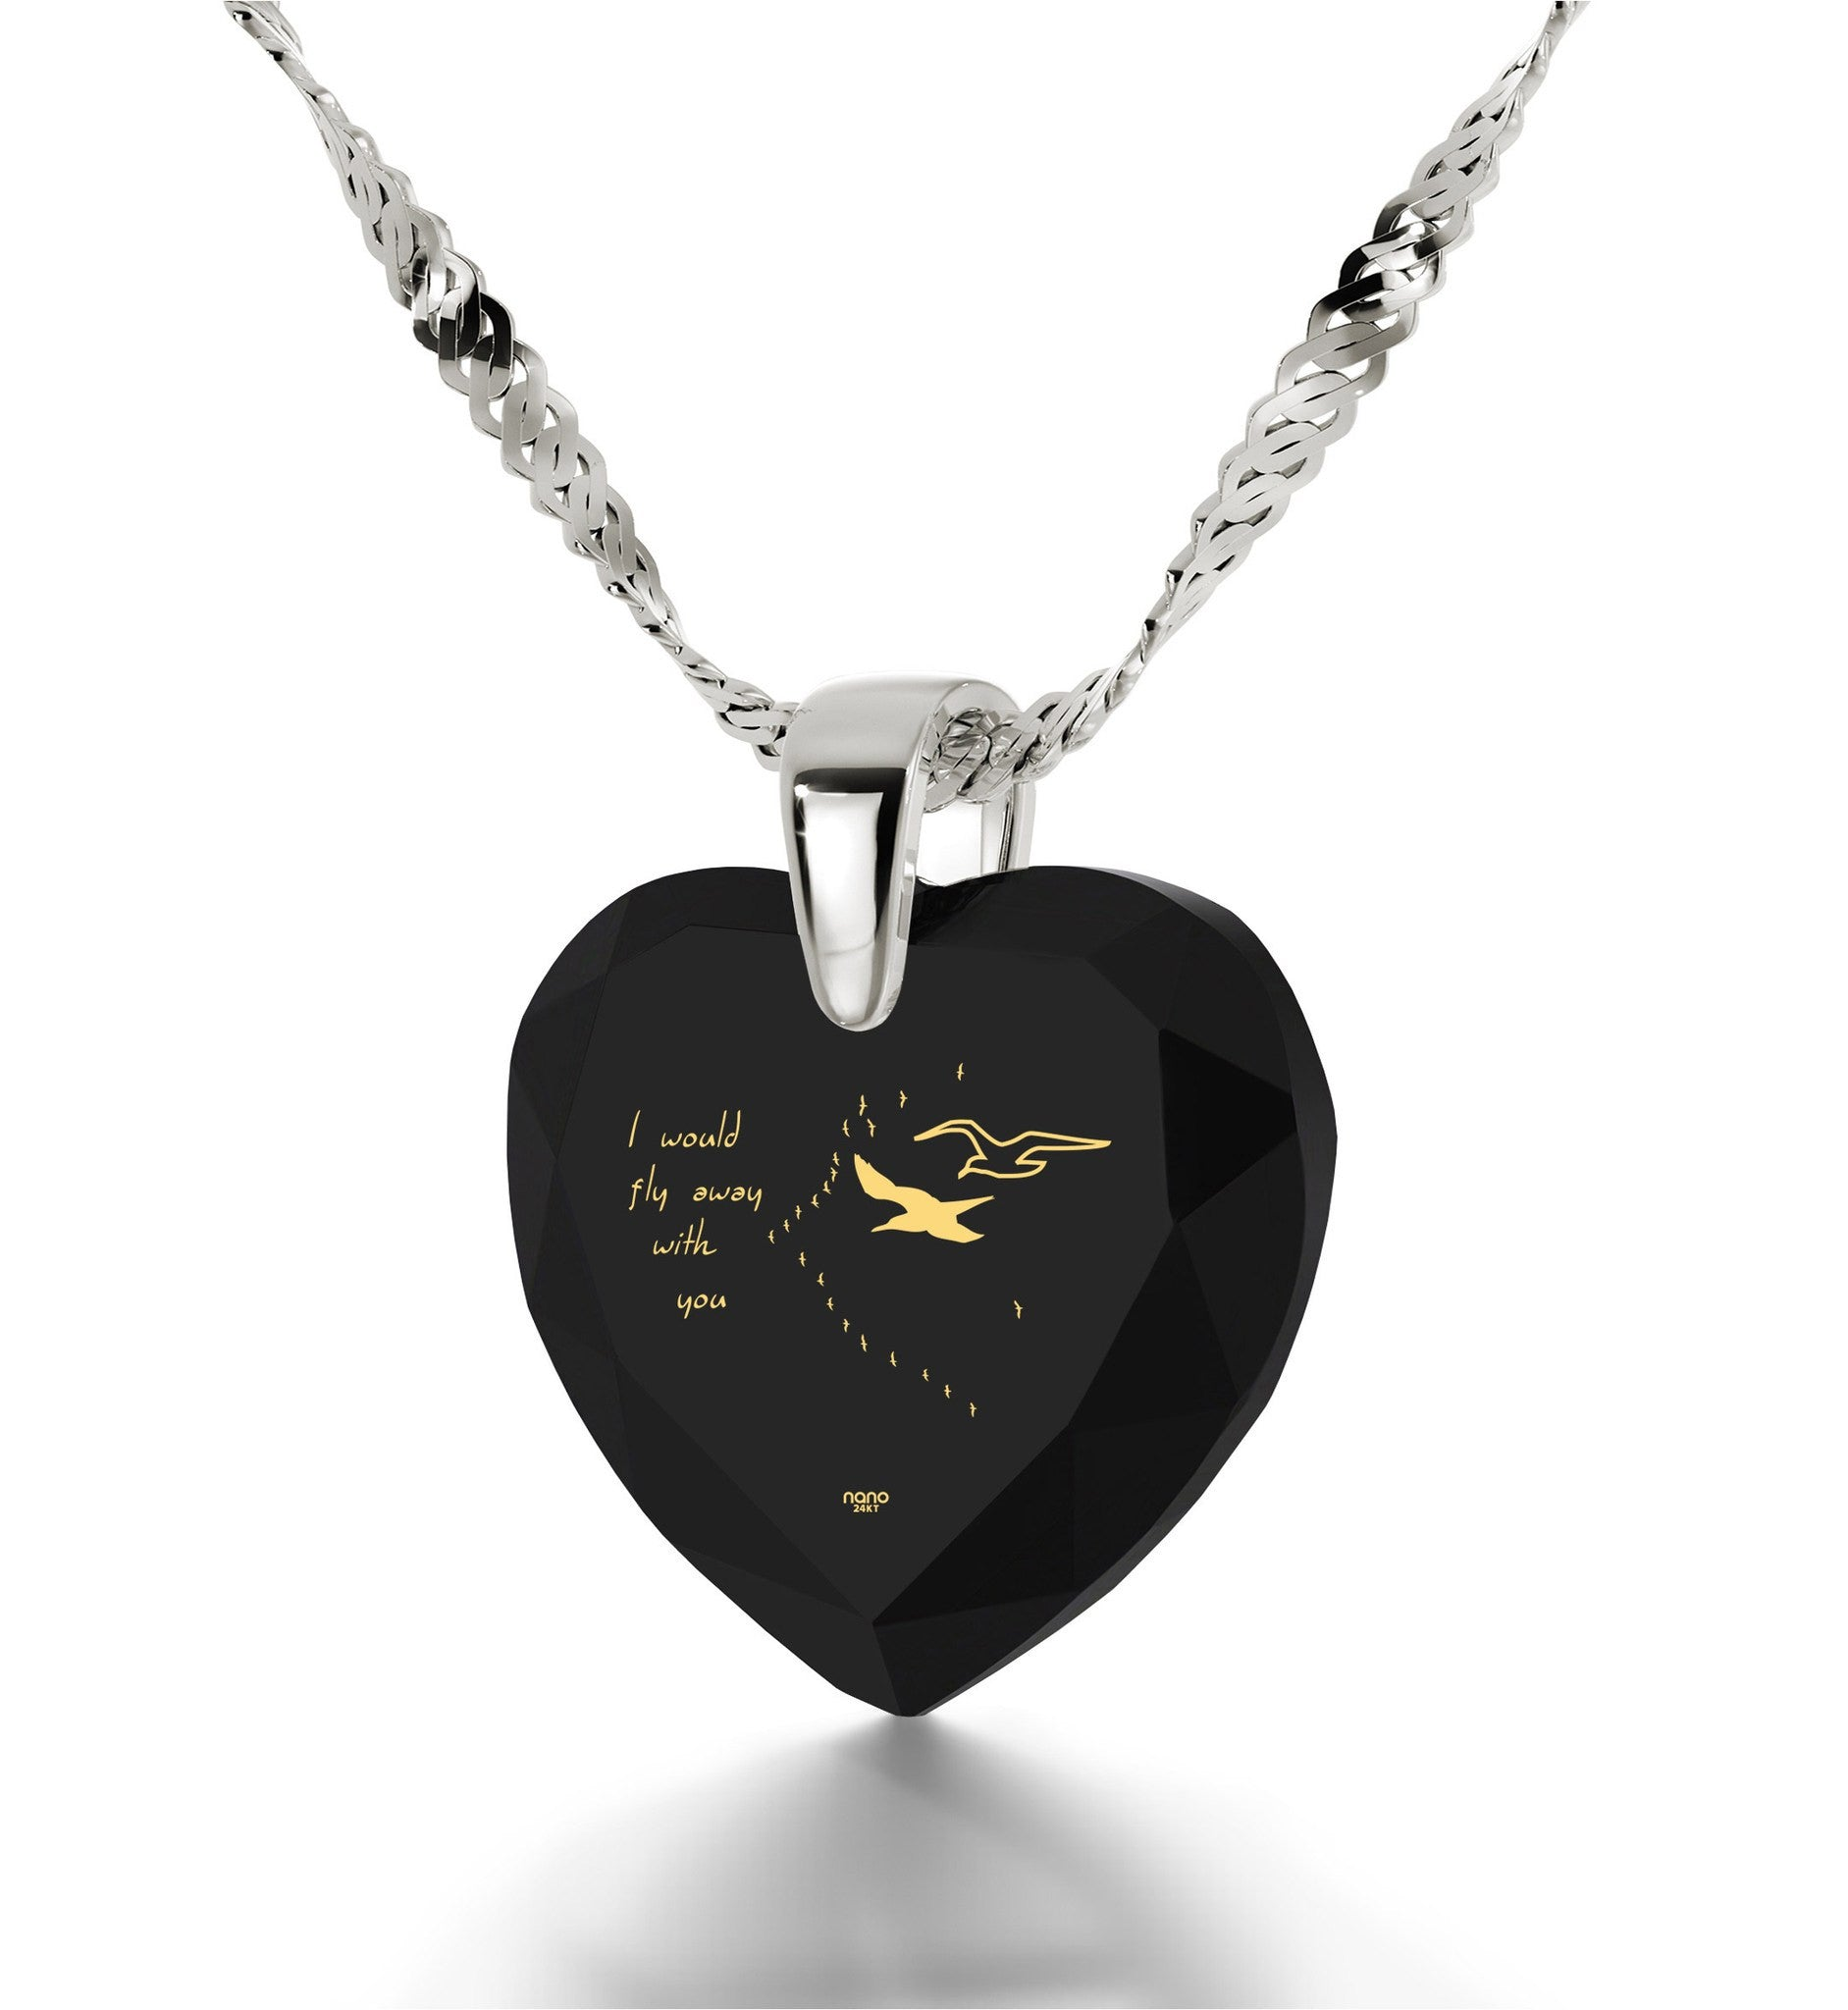 """Top WomensGifts,""I Would Fly Away with You"" 14kWhite Gold Filled Jewelry, Christmas Presents for Wife"""